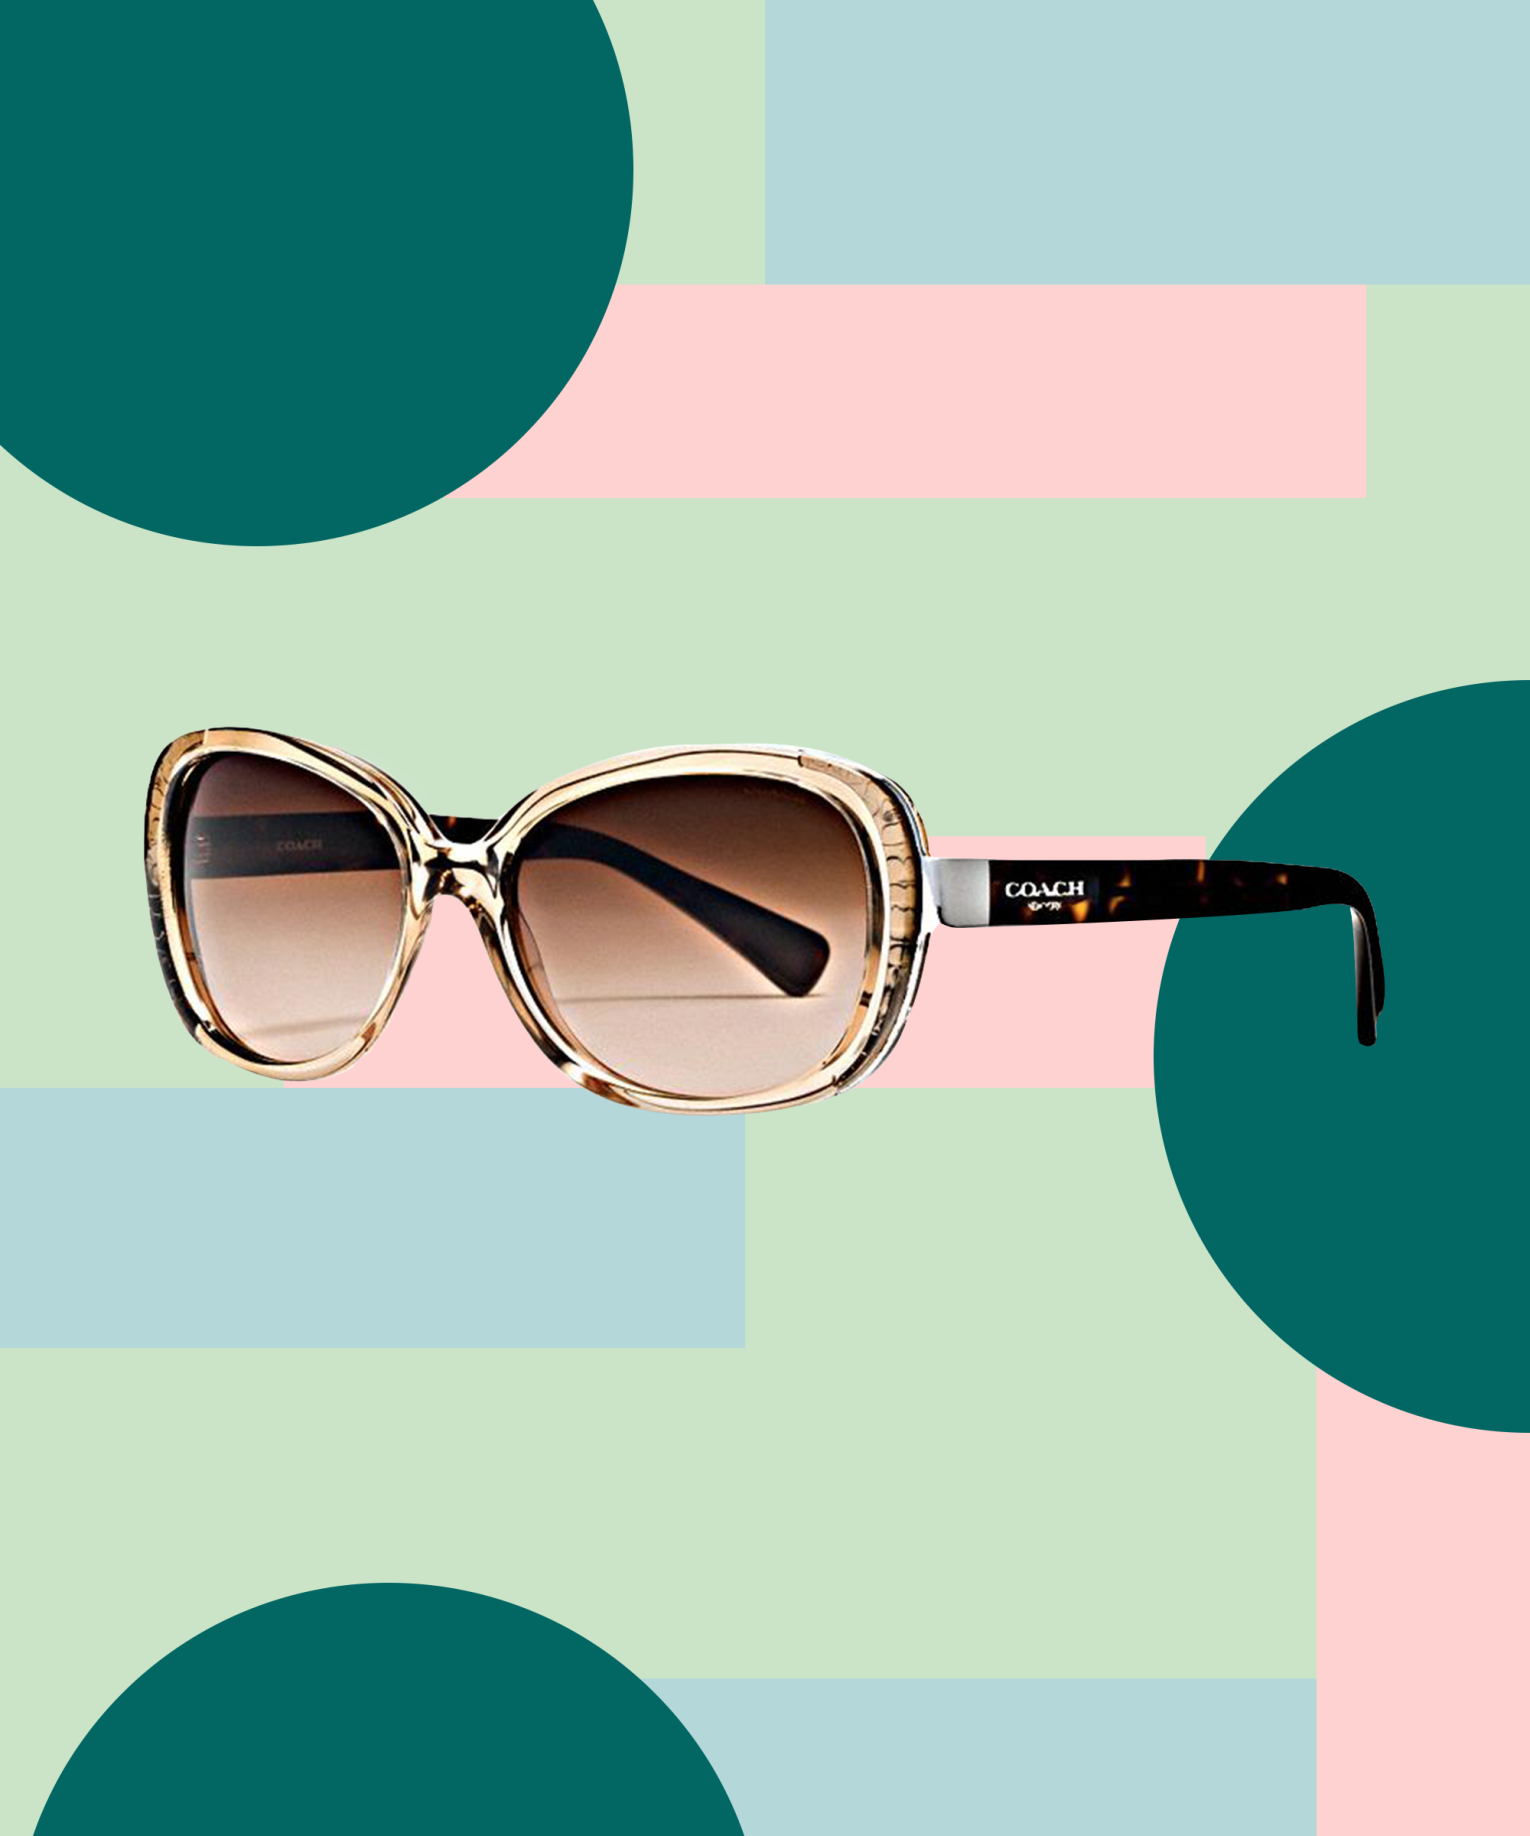 8722e2175b8b Coach's new sunnies give us a welcome dose of nostalgia. http://www